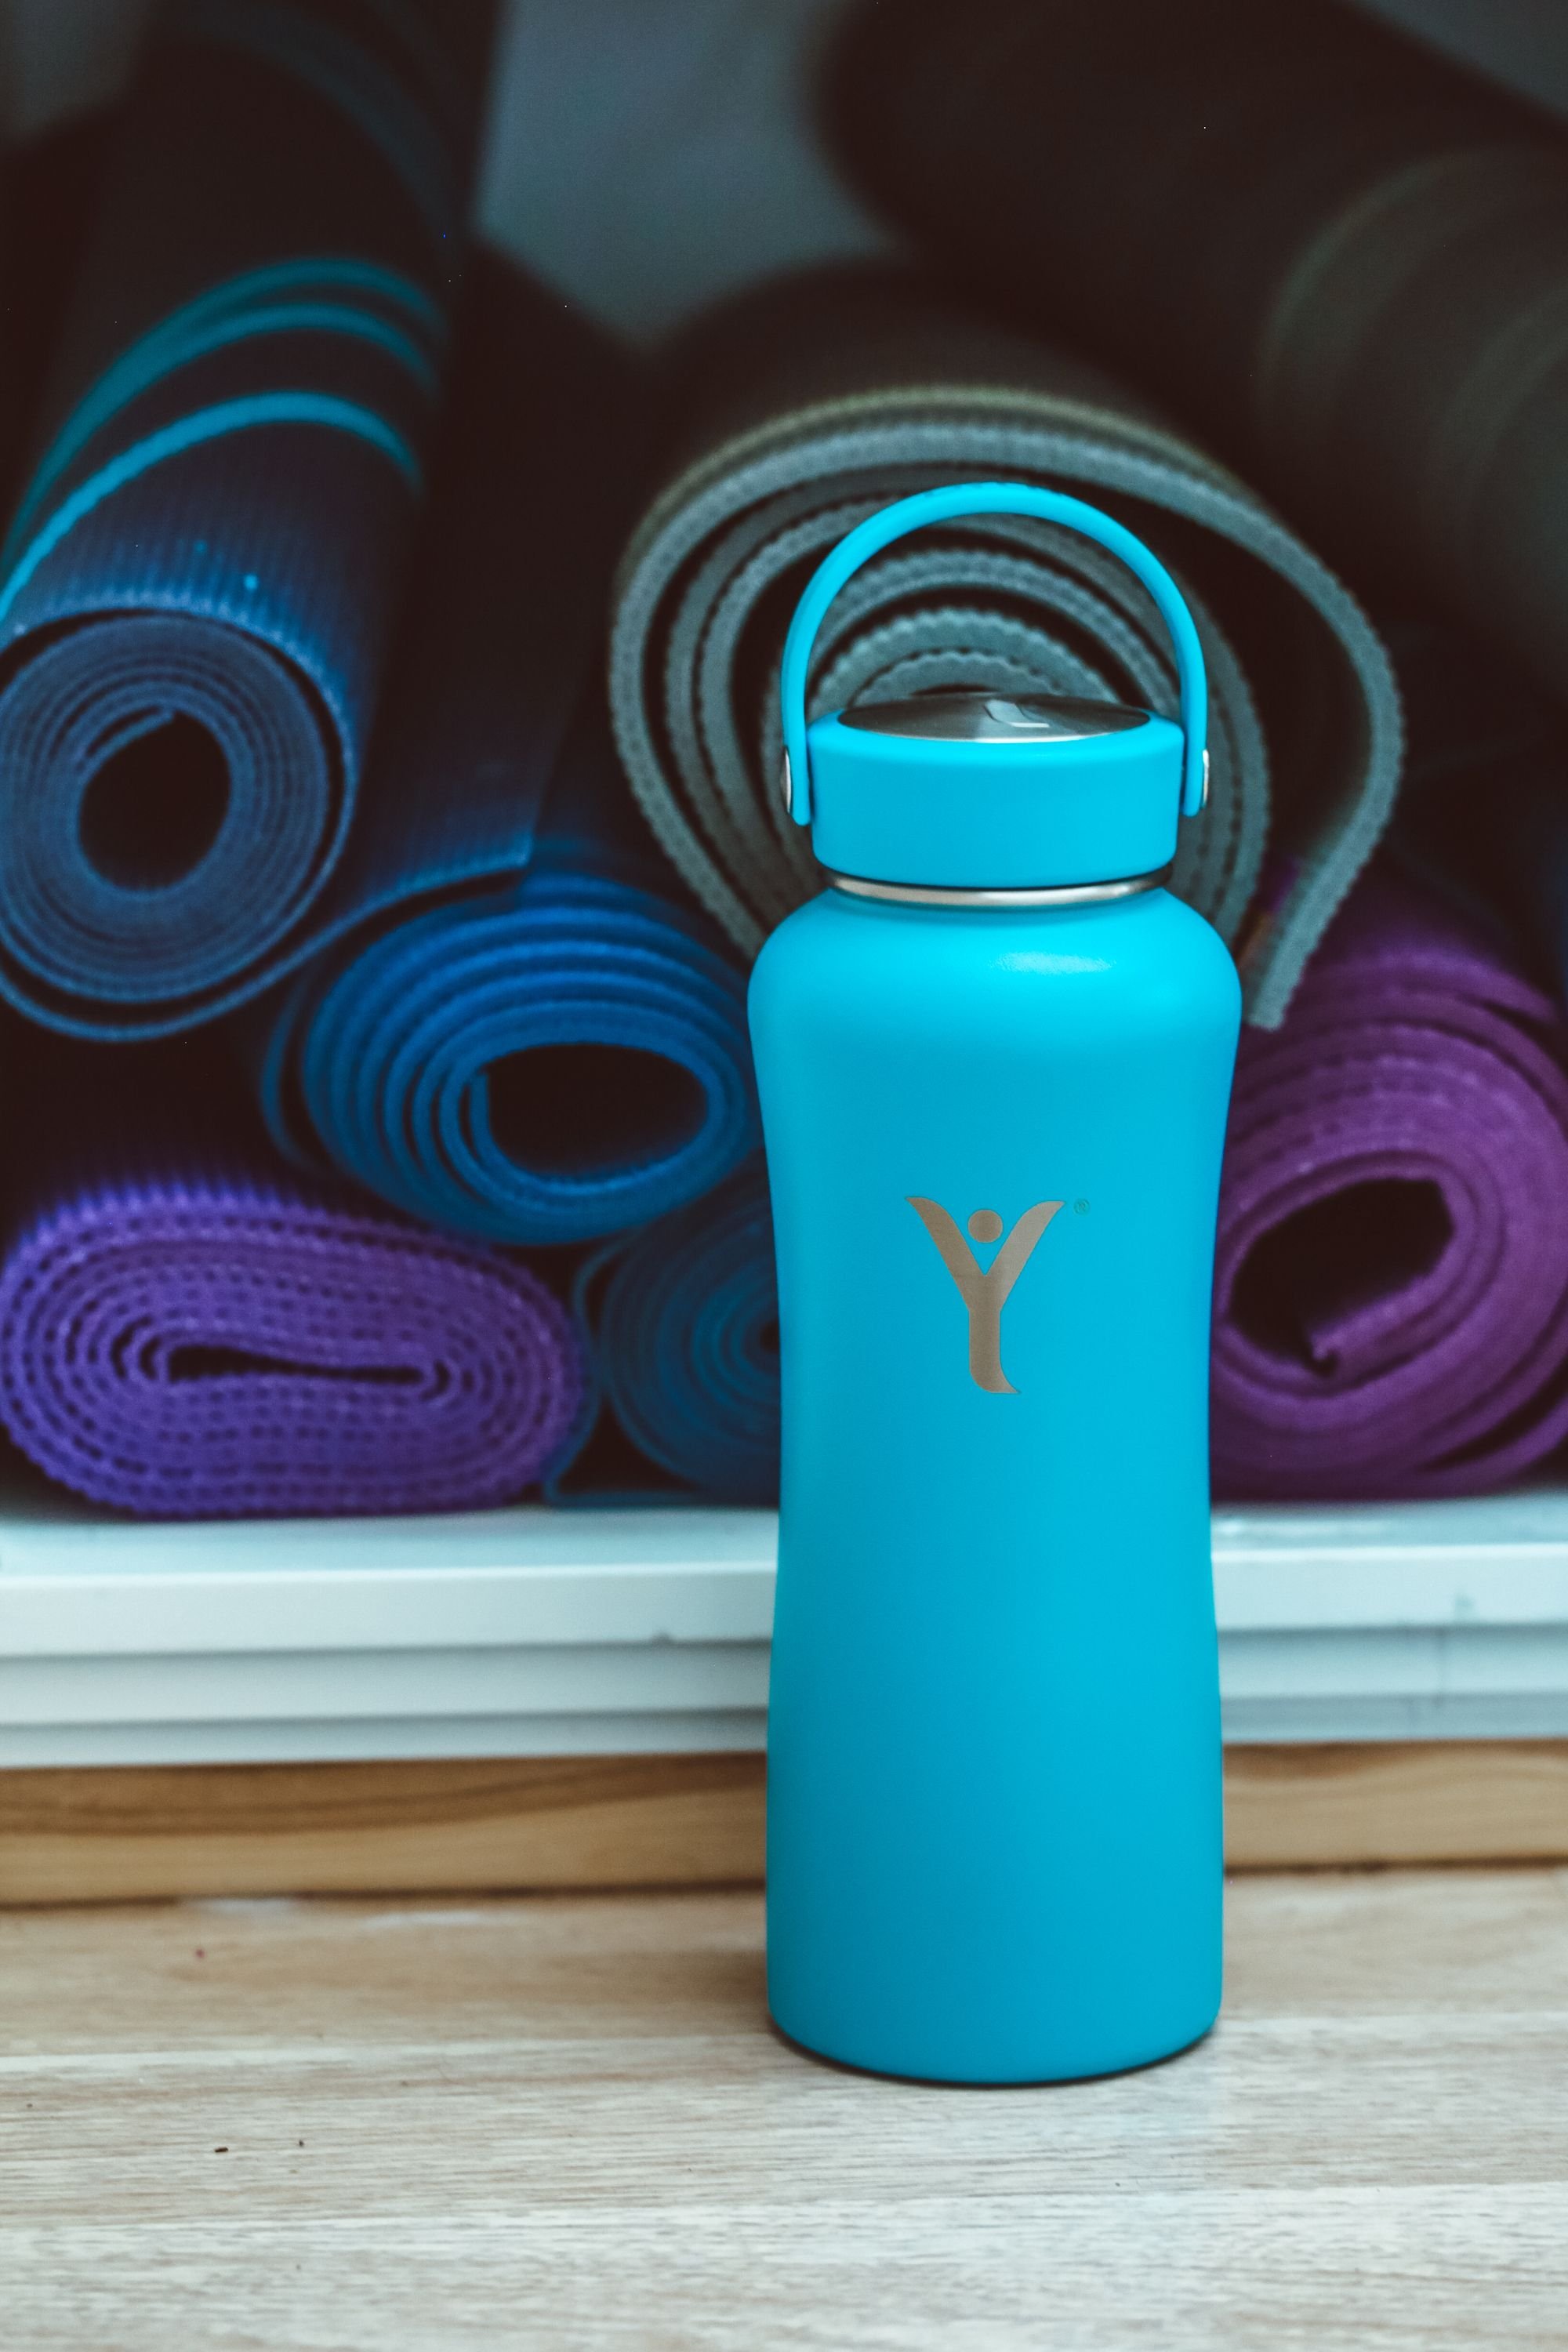 Alkaline is a great way to hydrate after your home workout